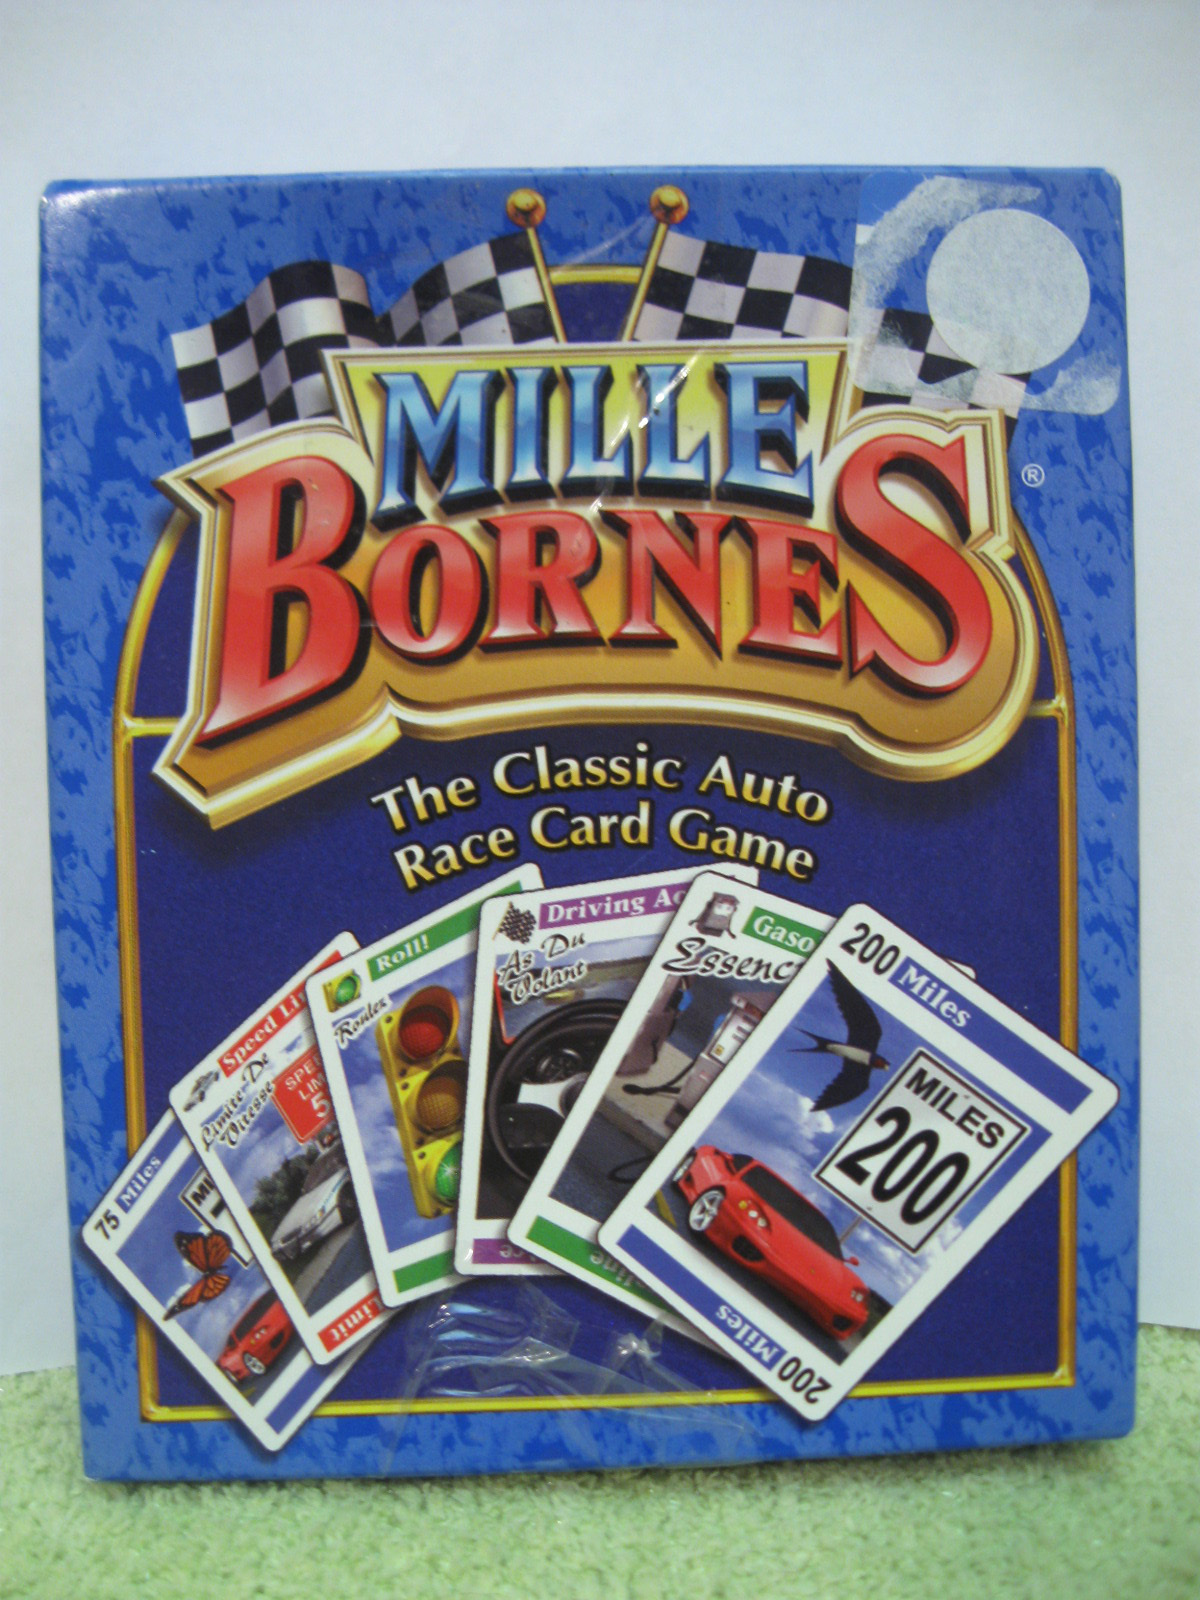 mille bornes french car race 2003 open with sealed cards game parker bros auto other card. Black Bedroom Furniture Sets. Home Design Ideas